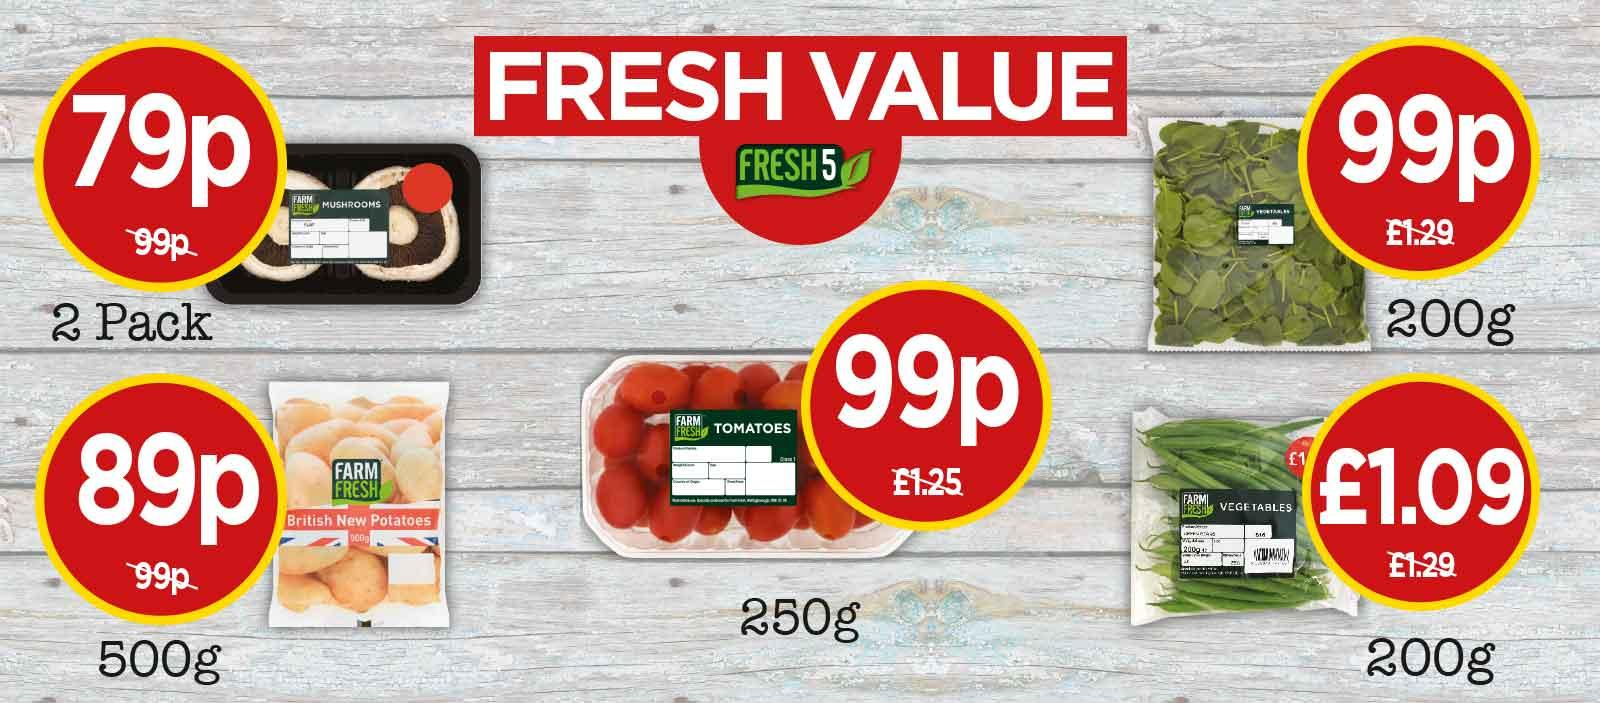 FRESH 5: Farm Fresh Baby Plum Tomatoes, Spinach, British New Potatoes, Flat Mushrooms, Fine Green Beans - at Budgens